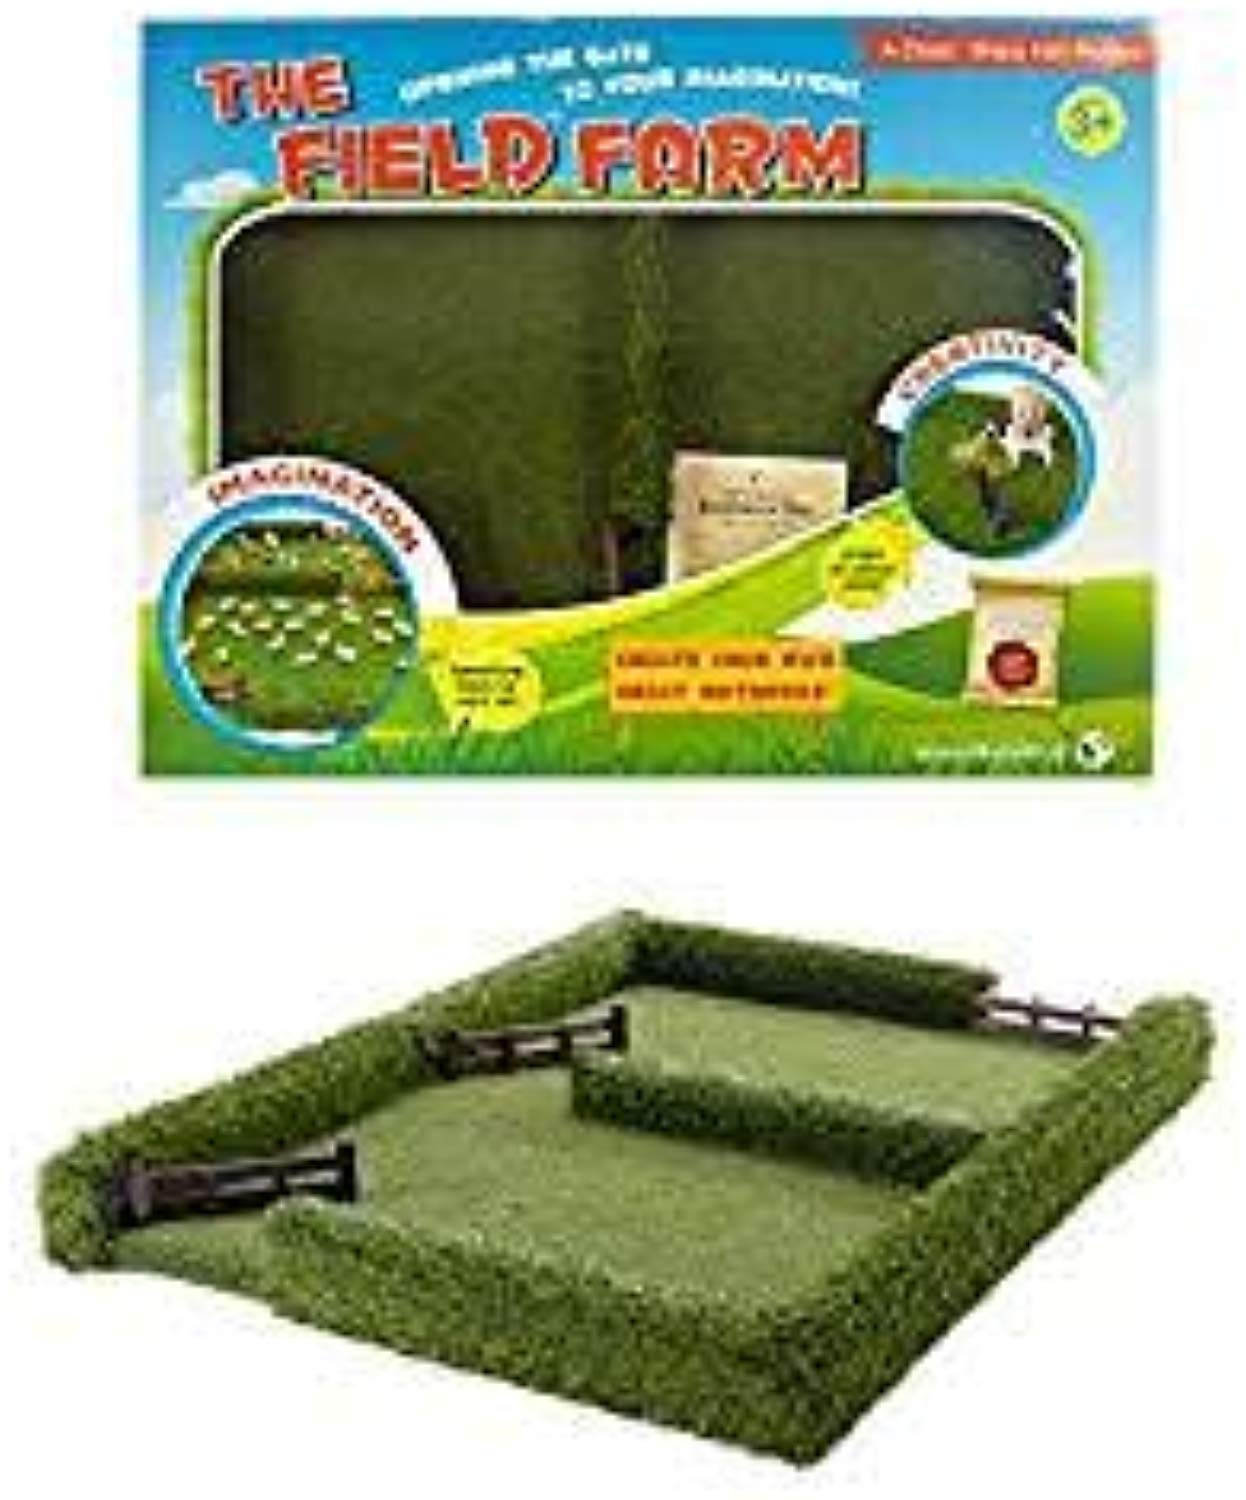 The Field bambini giocattolo - The Farm - Creative Play Risorse per l'apprendimento